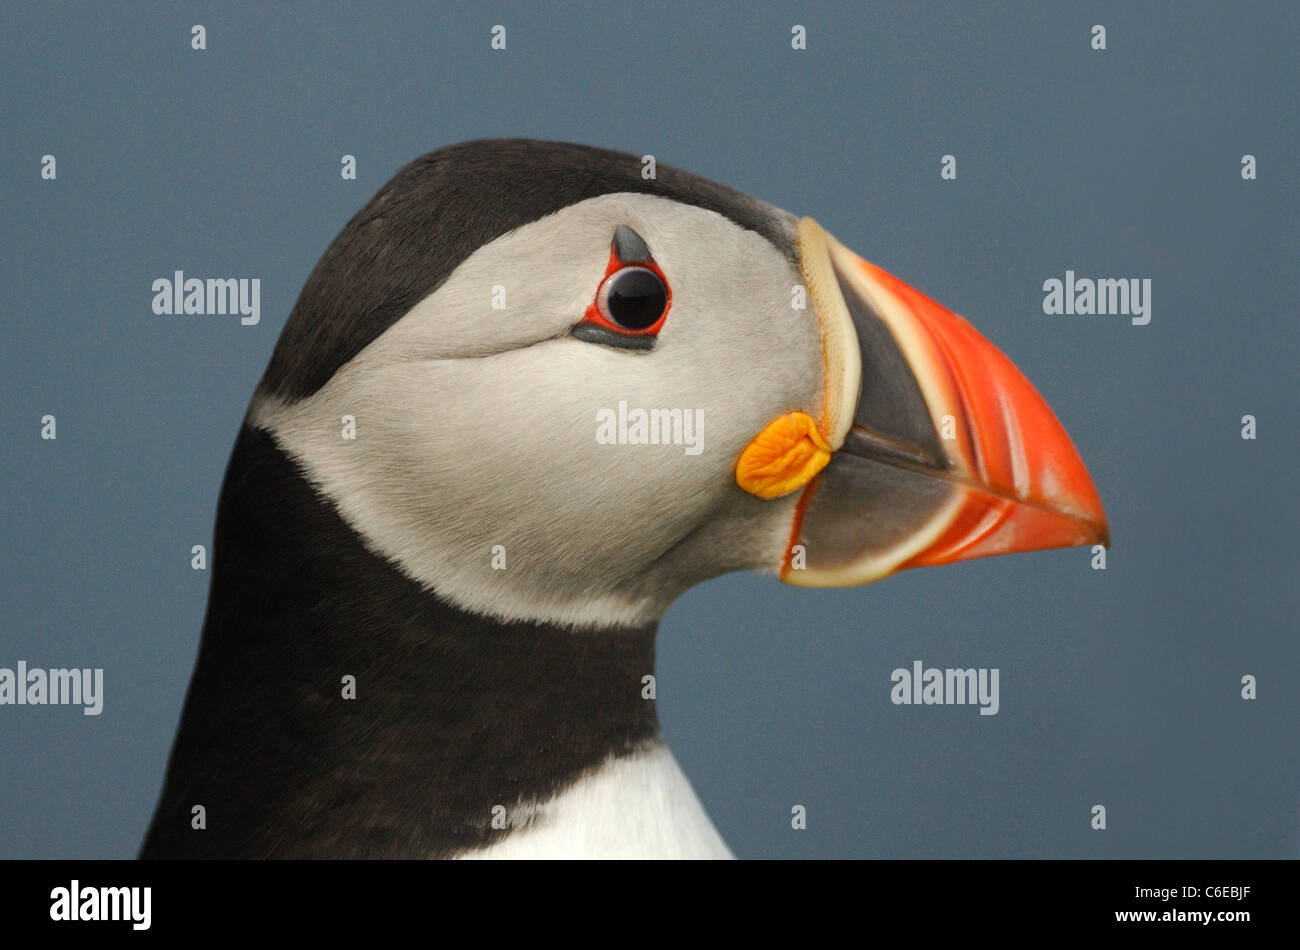 Puffin (Fratercula arctica) on the coastal cliffs of Skomer Island, Pembrokeshire, Wales, UK. May 2011. - Stock Image